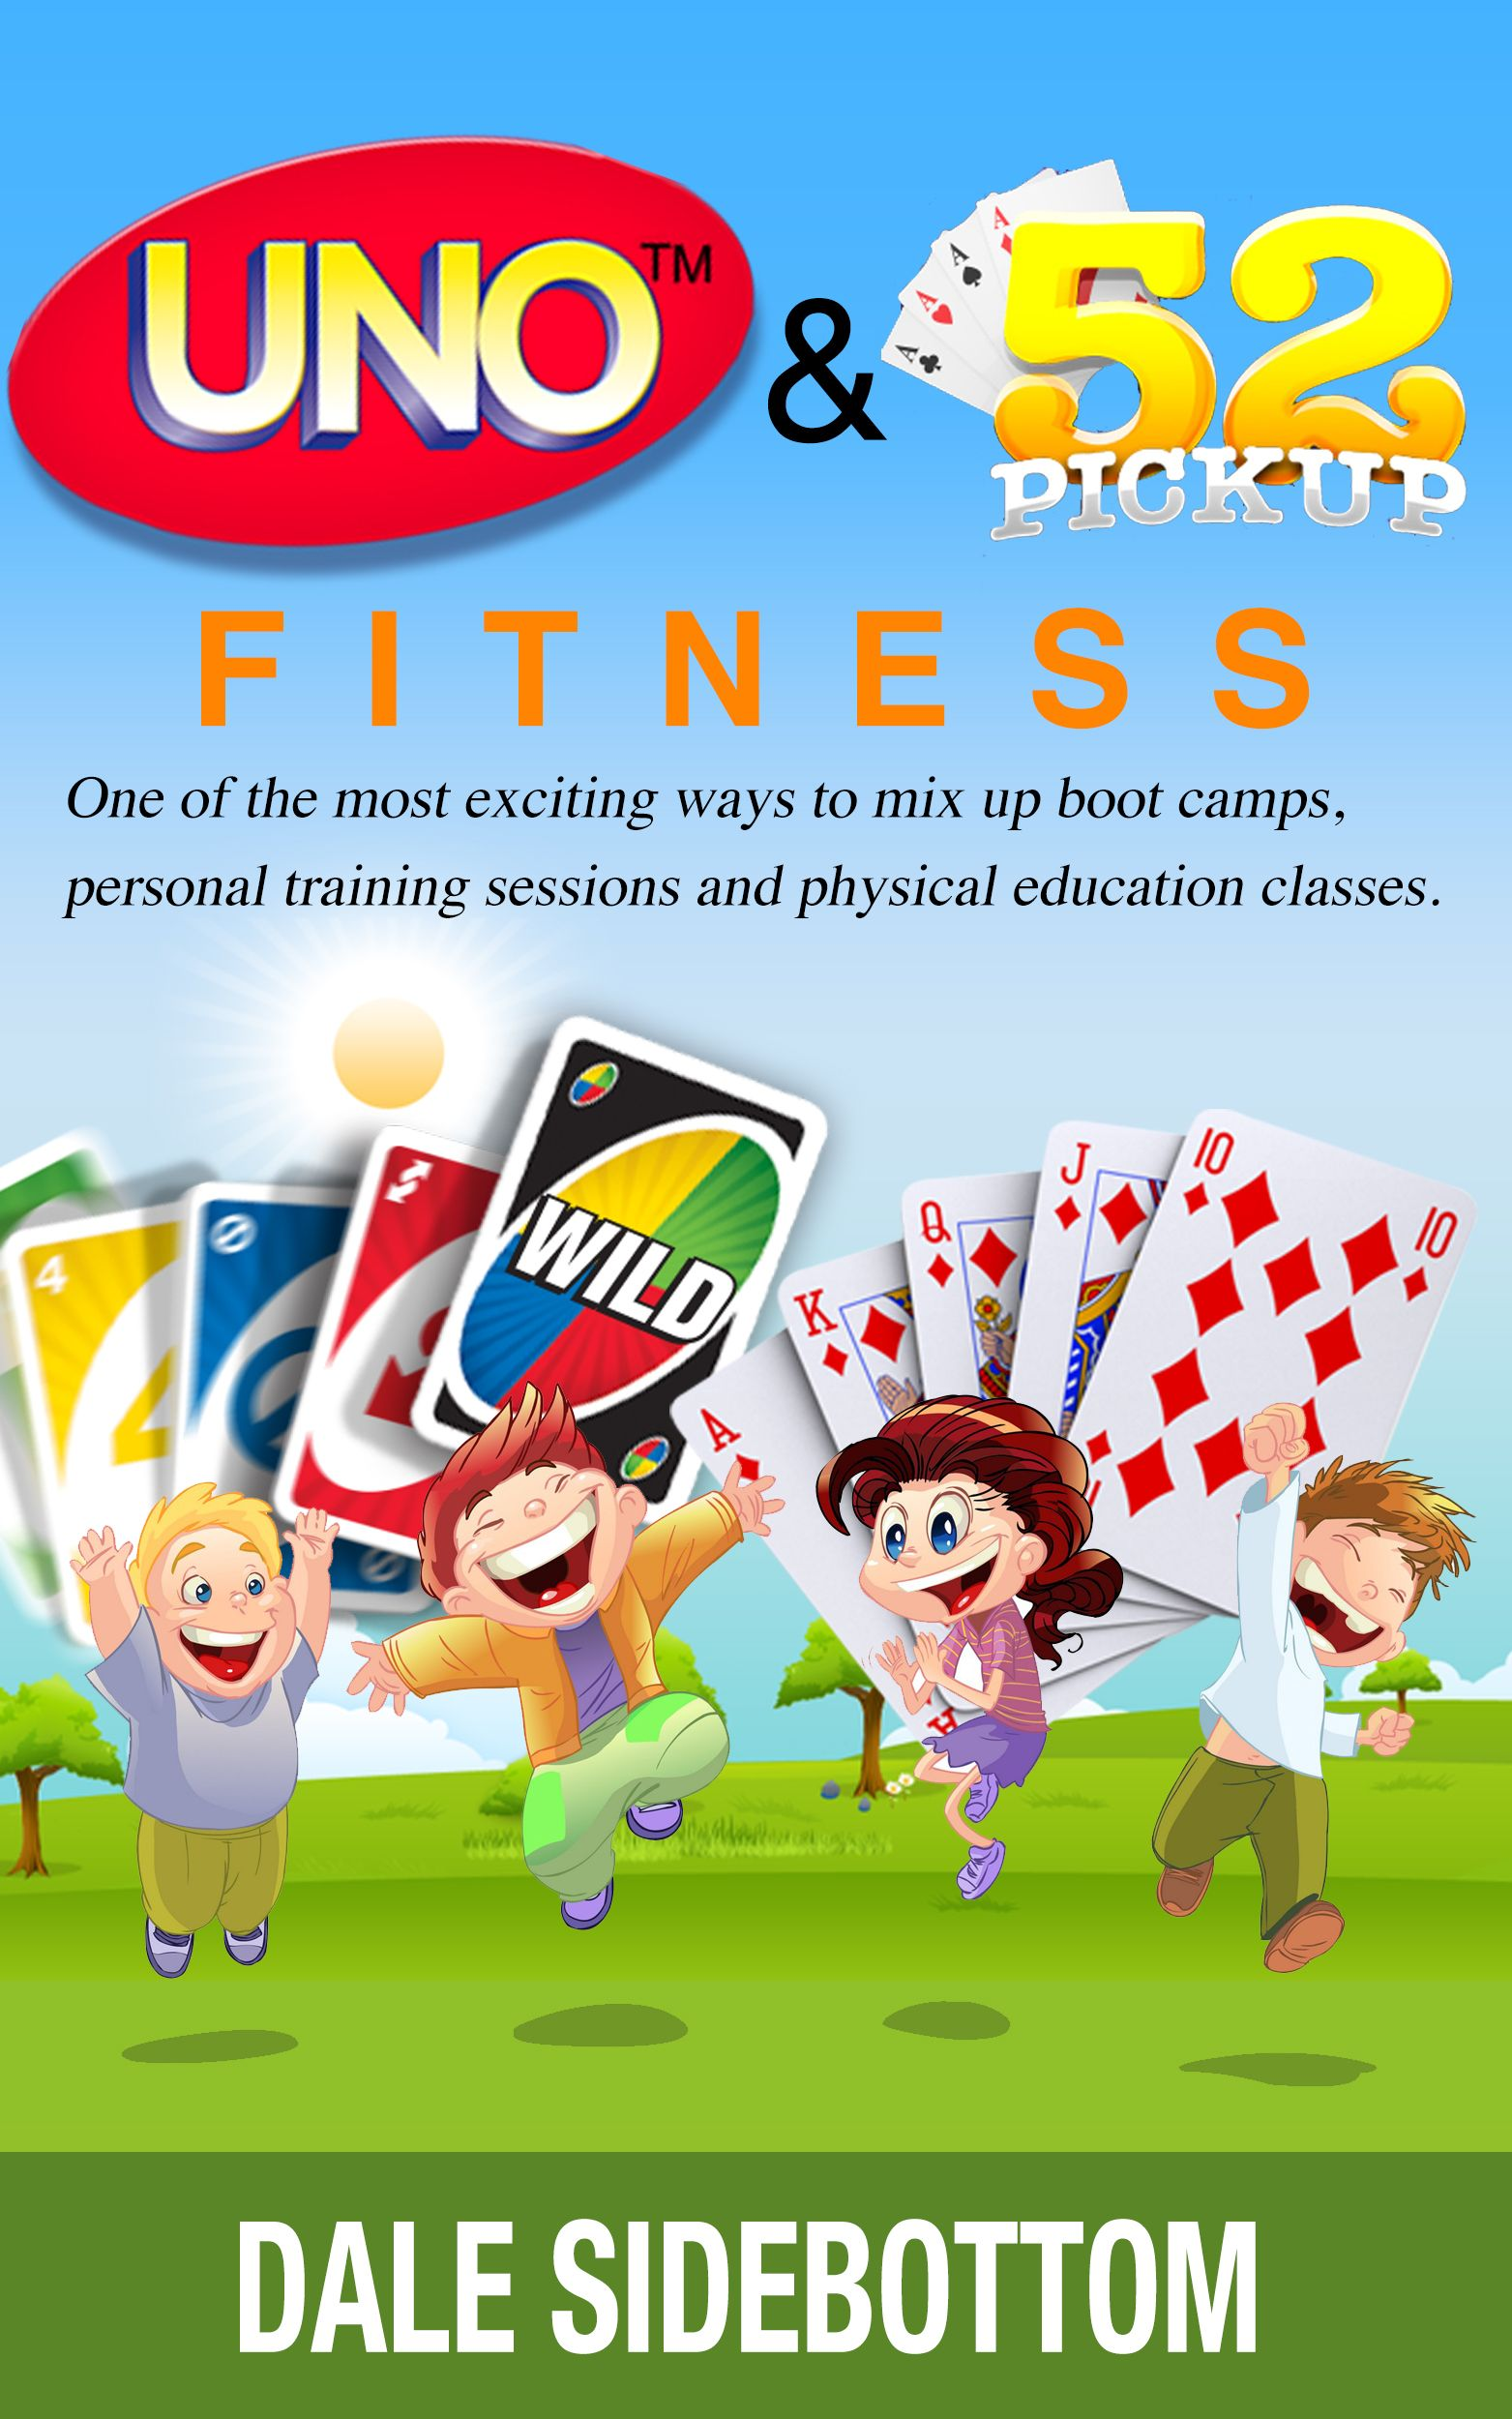 UNO+02 Physical fitness program, Workout games, Physical